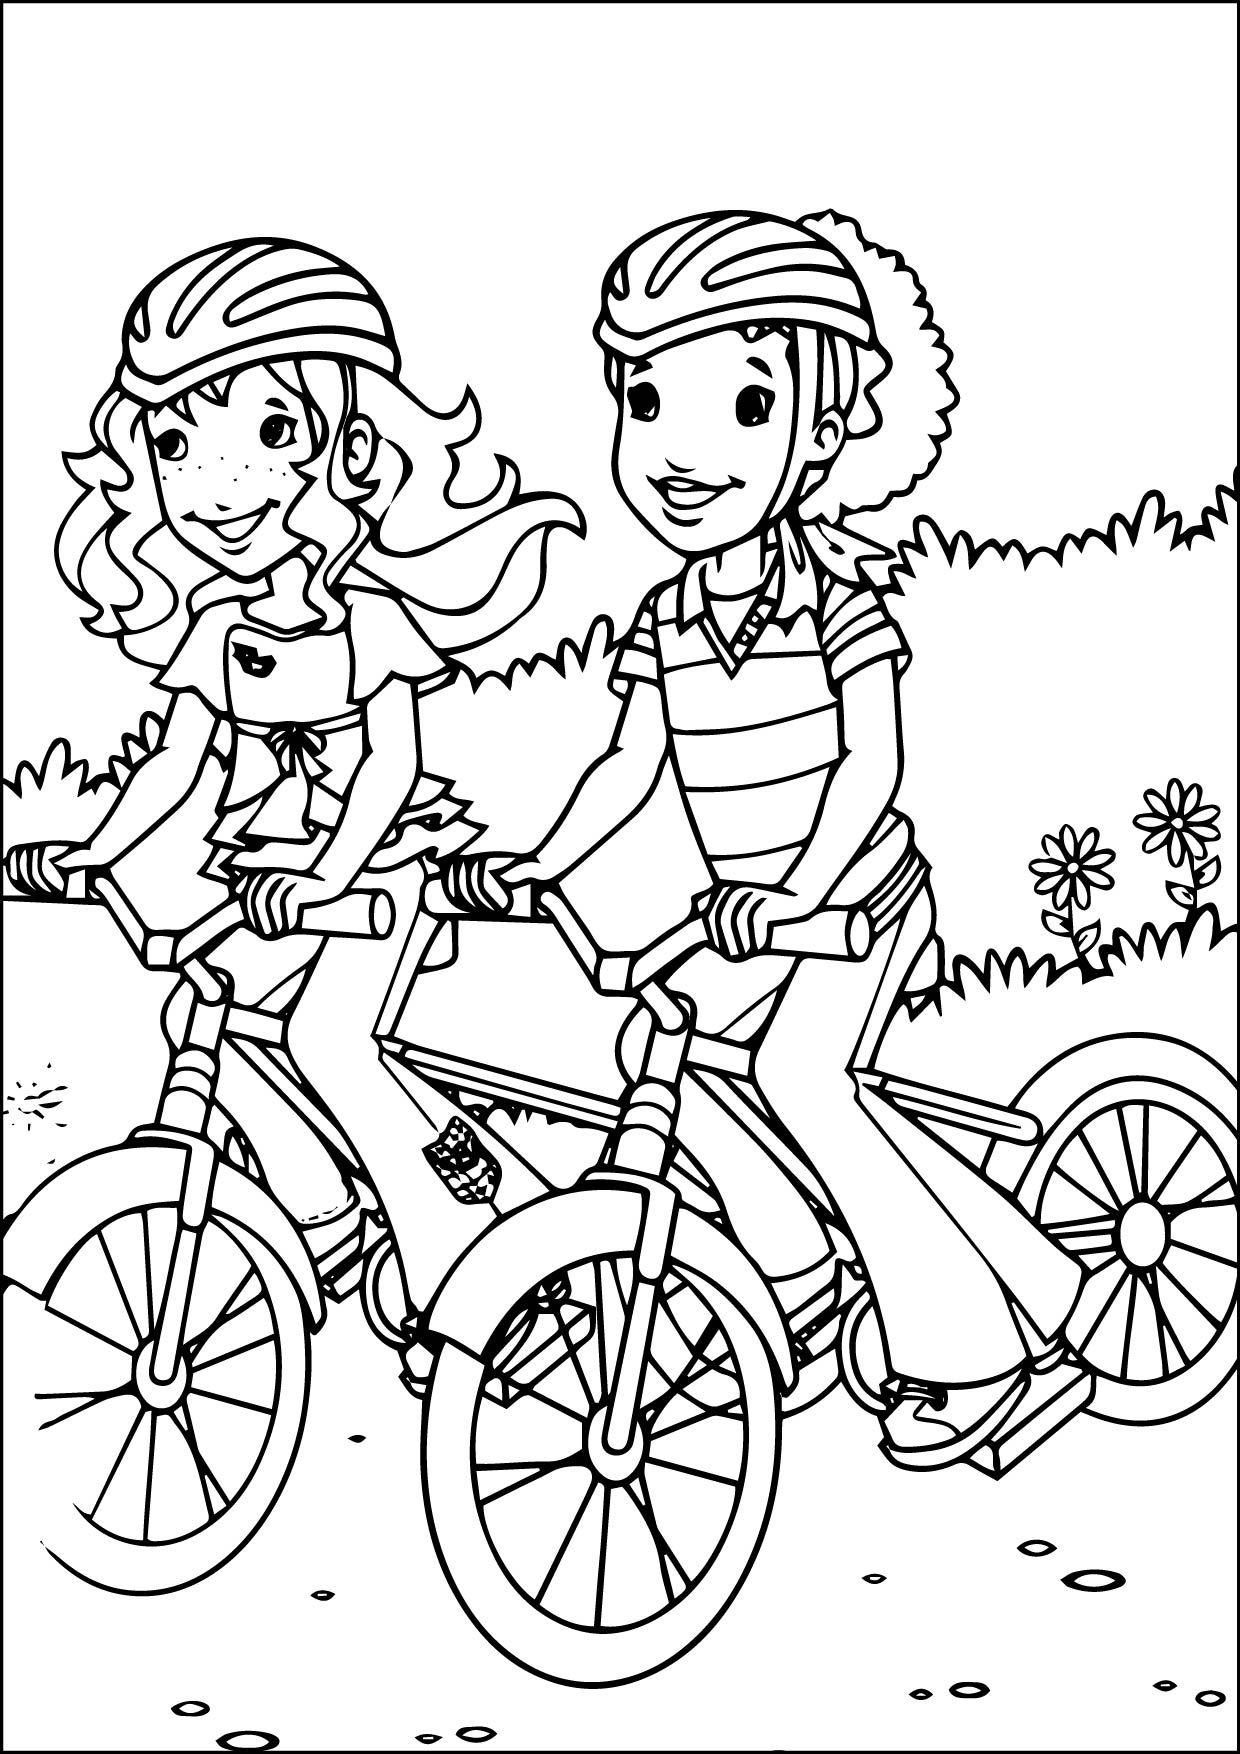 cool coloring page 10-10-2015_194819-01 Check more at http